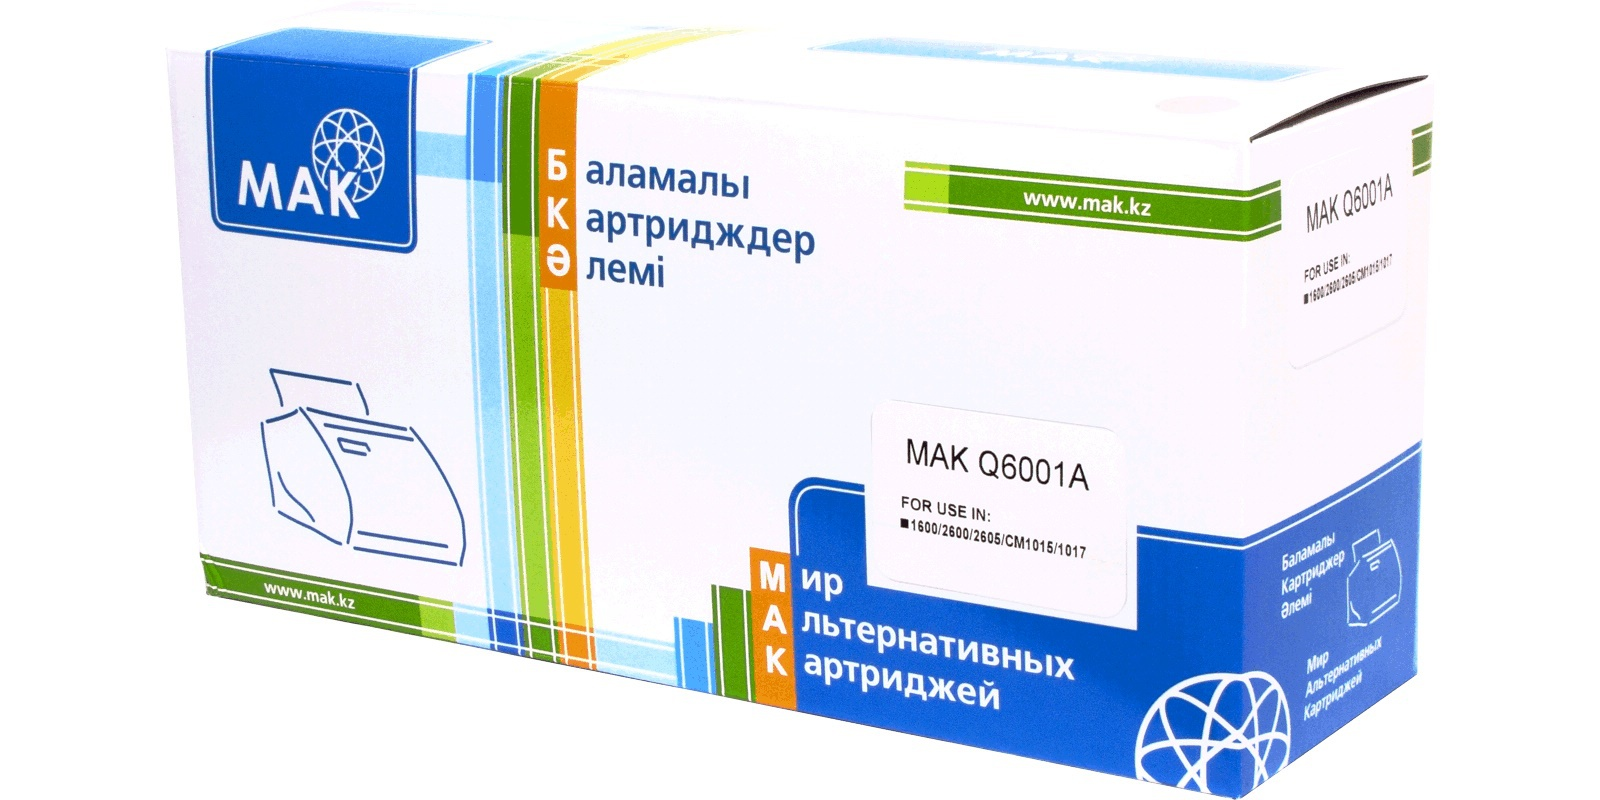 MAK №124A Q6001A CARTRIDGE-307/707/107, голубой (cyan), для HP